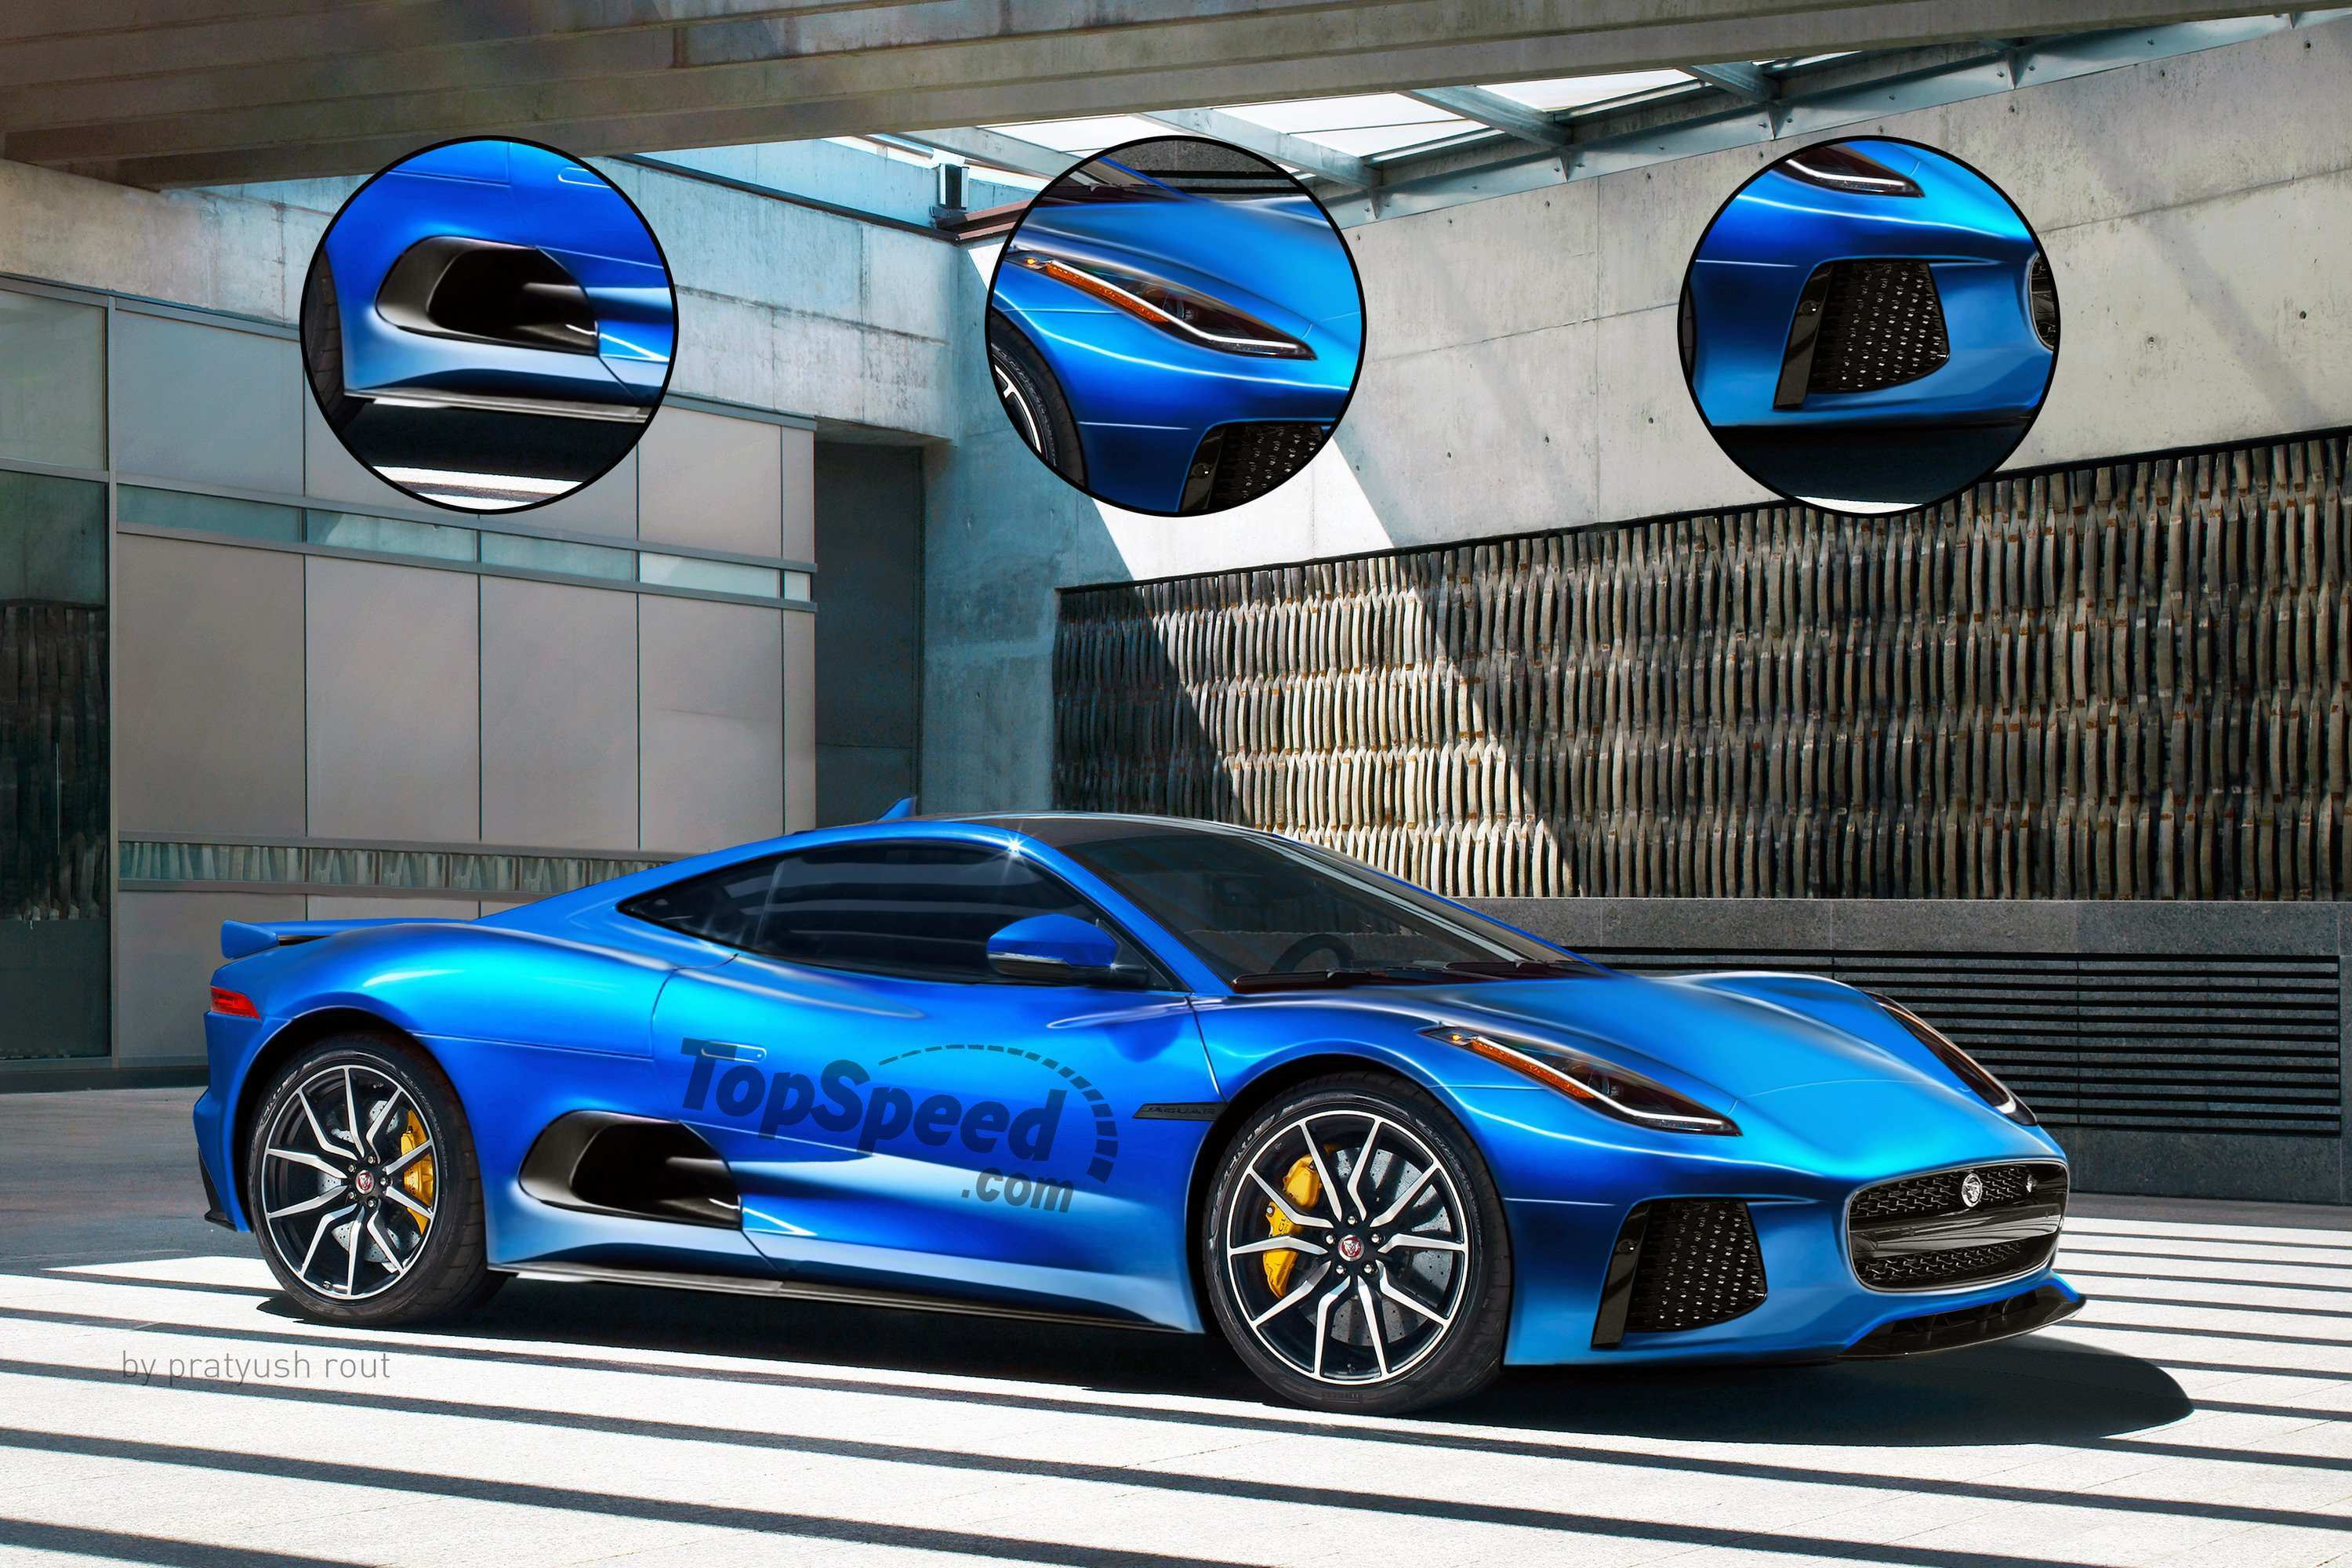 85 All New 2020 Jaguar F Type Prices for 2020 Jaguar F Type